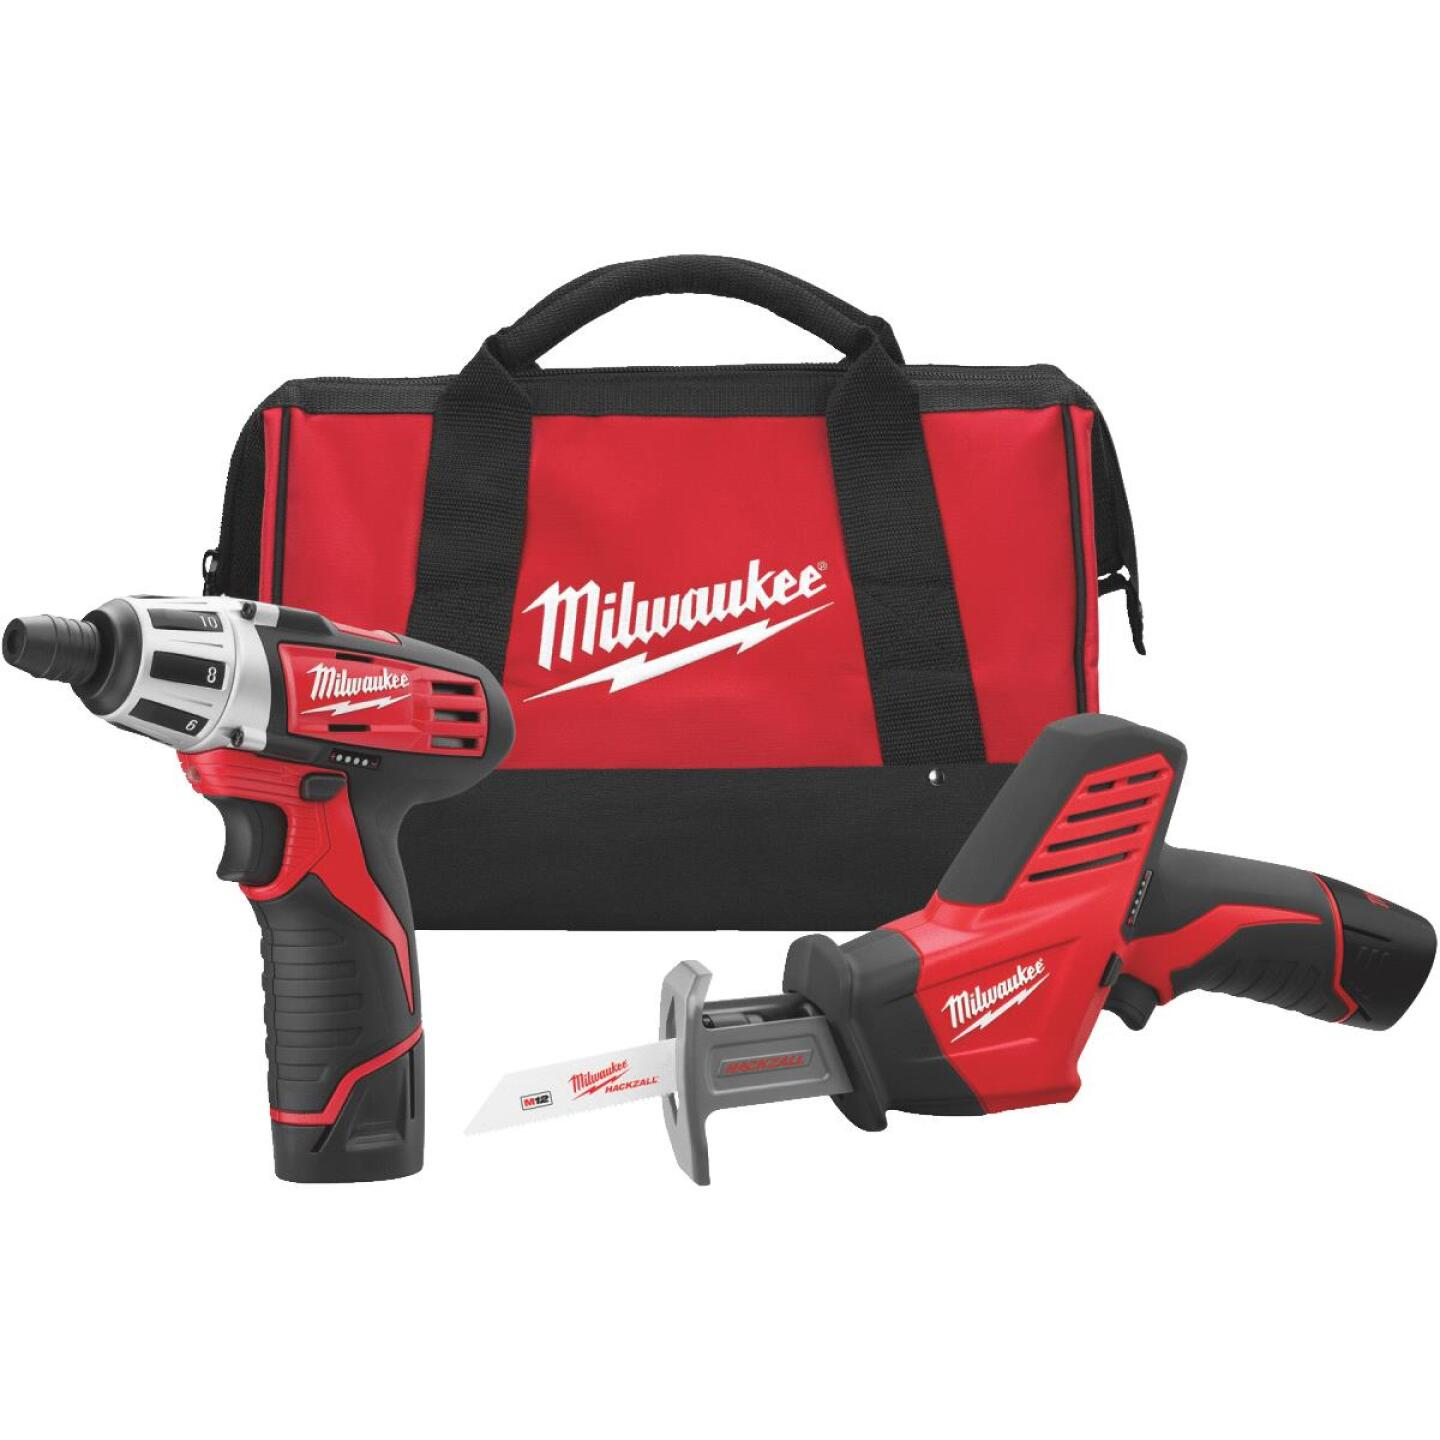 Milwaukee 2-Tool M12 12V Lithium-Ion Screwdriver & Reciprocating Saw Cordless Tool Combo Kit Image 4